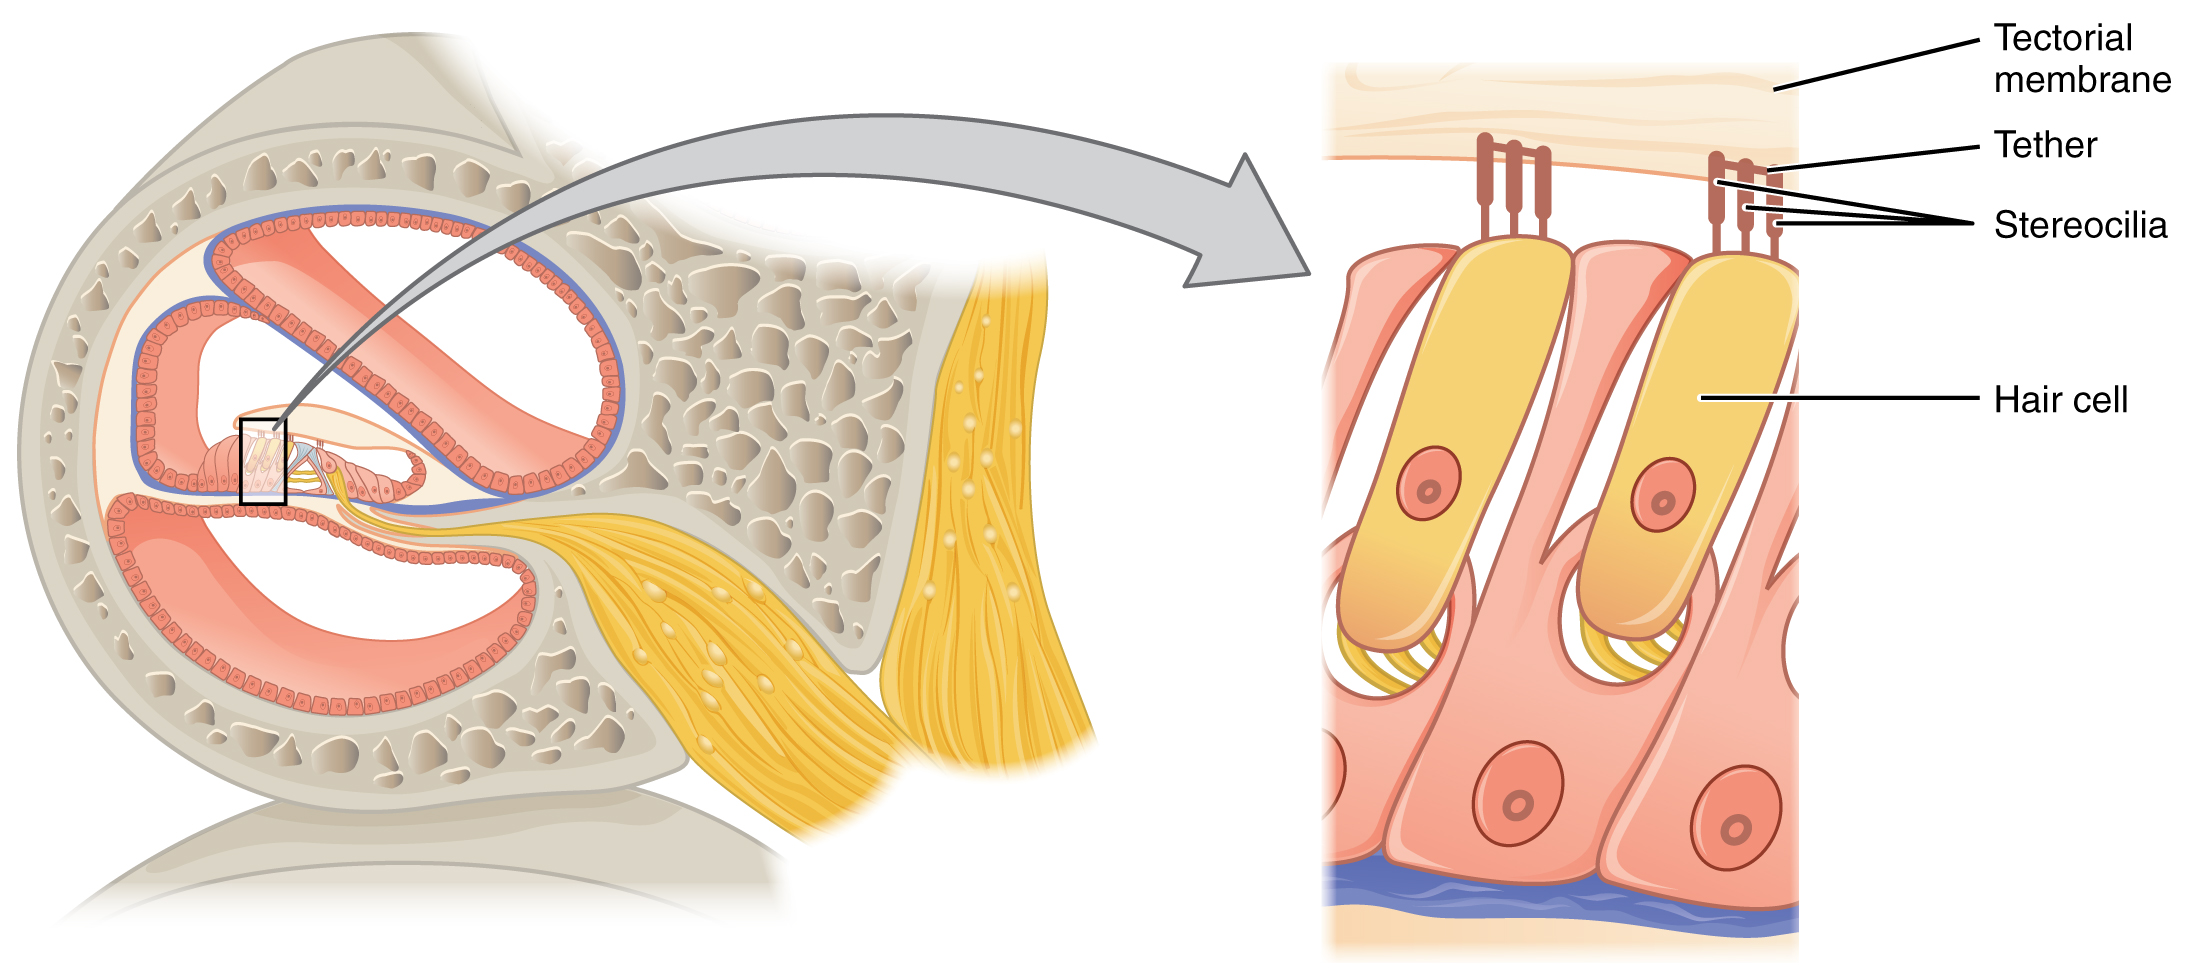 This diagram shows the structure of the hair cell. The right panel shows a magnified view of the hair cell.